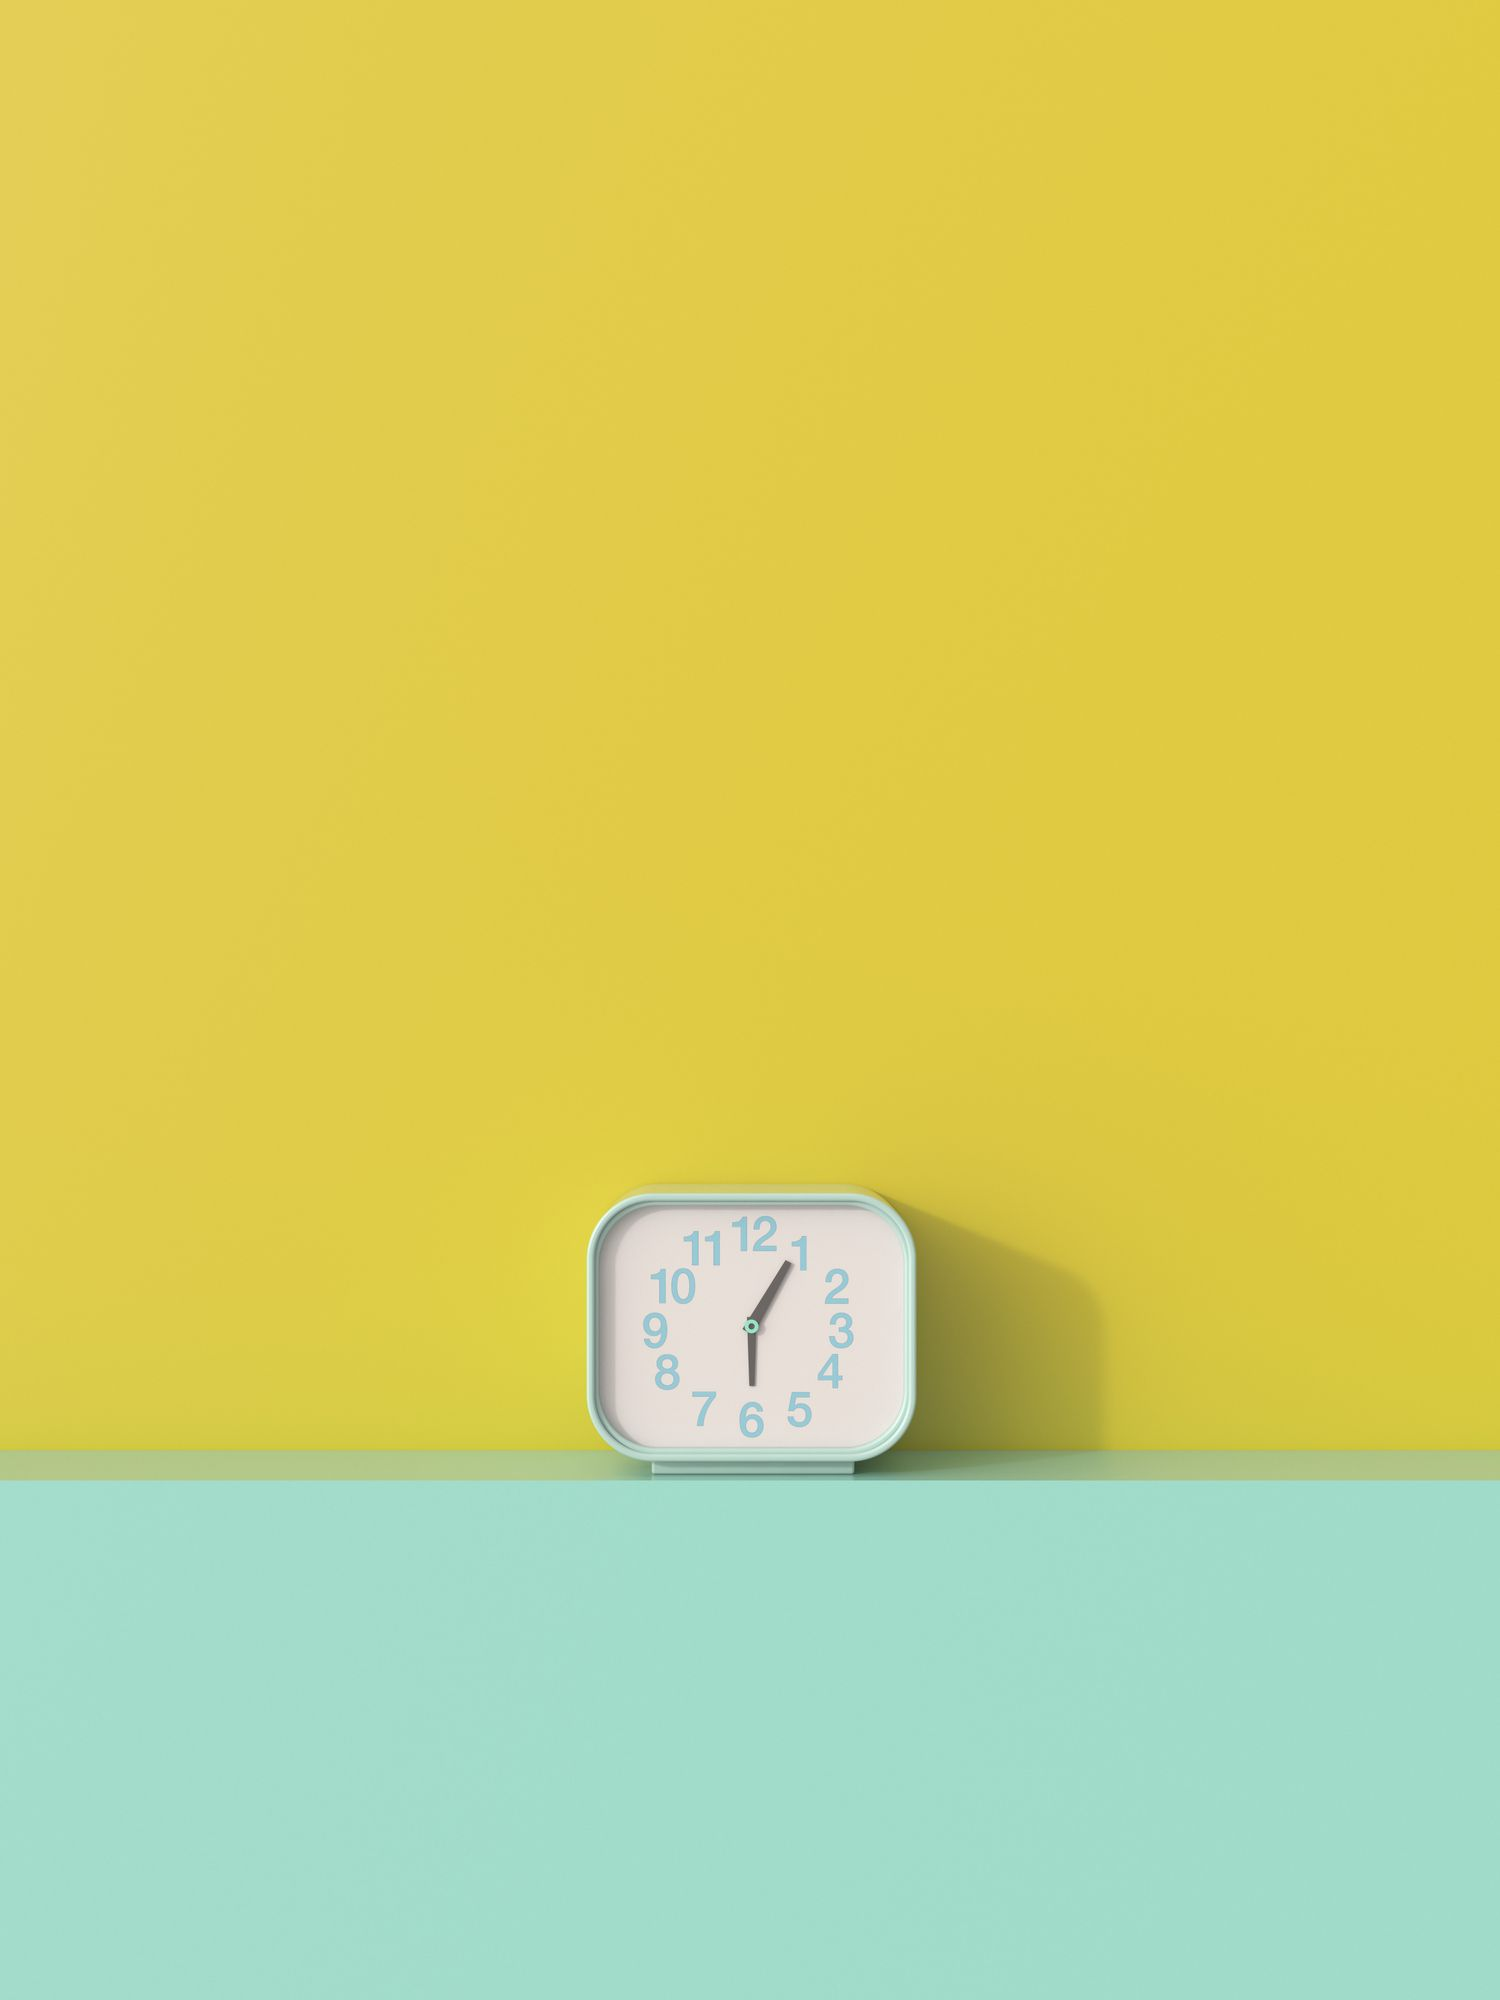 3D rendering, Alarm clock on shelf aggainst yellow background